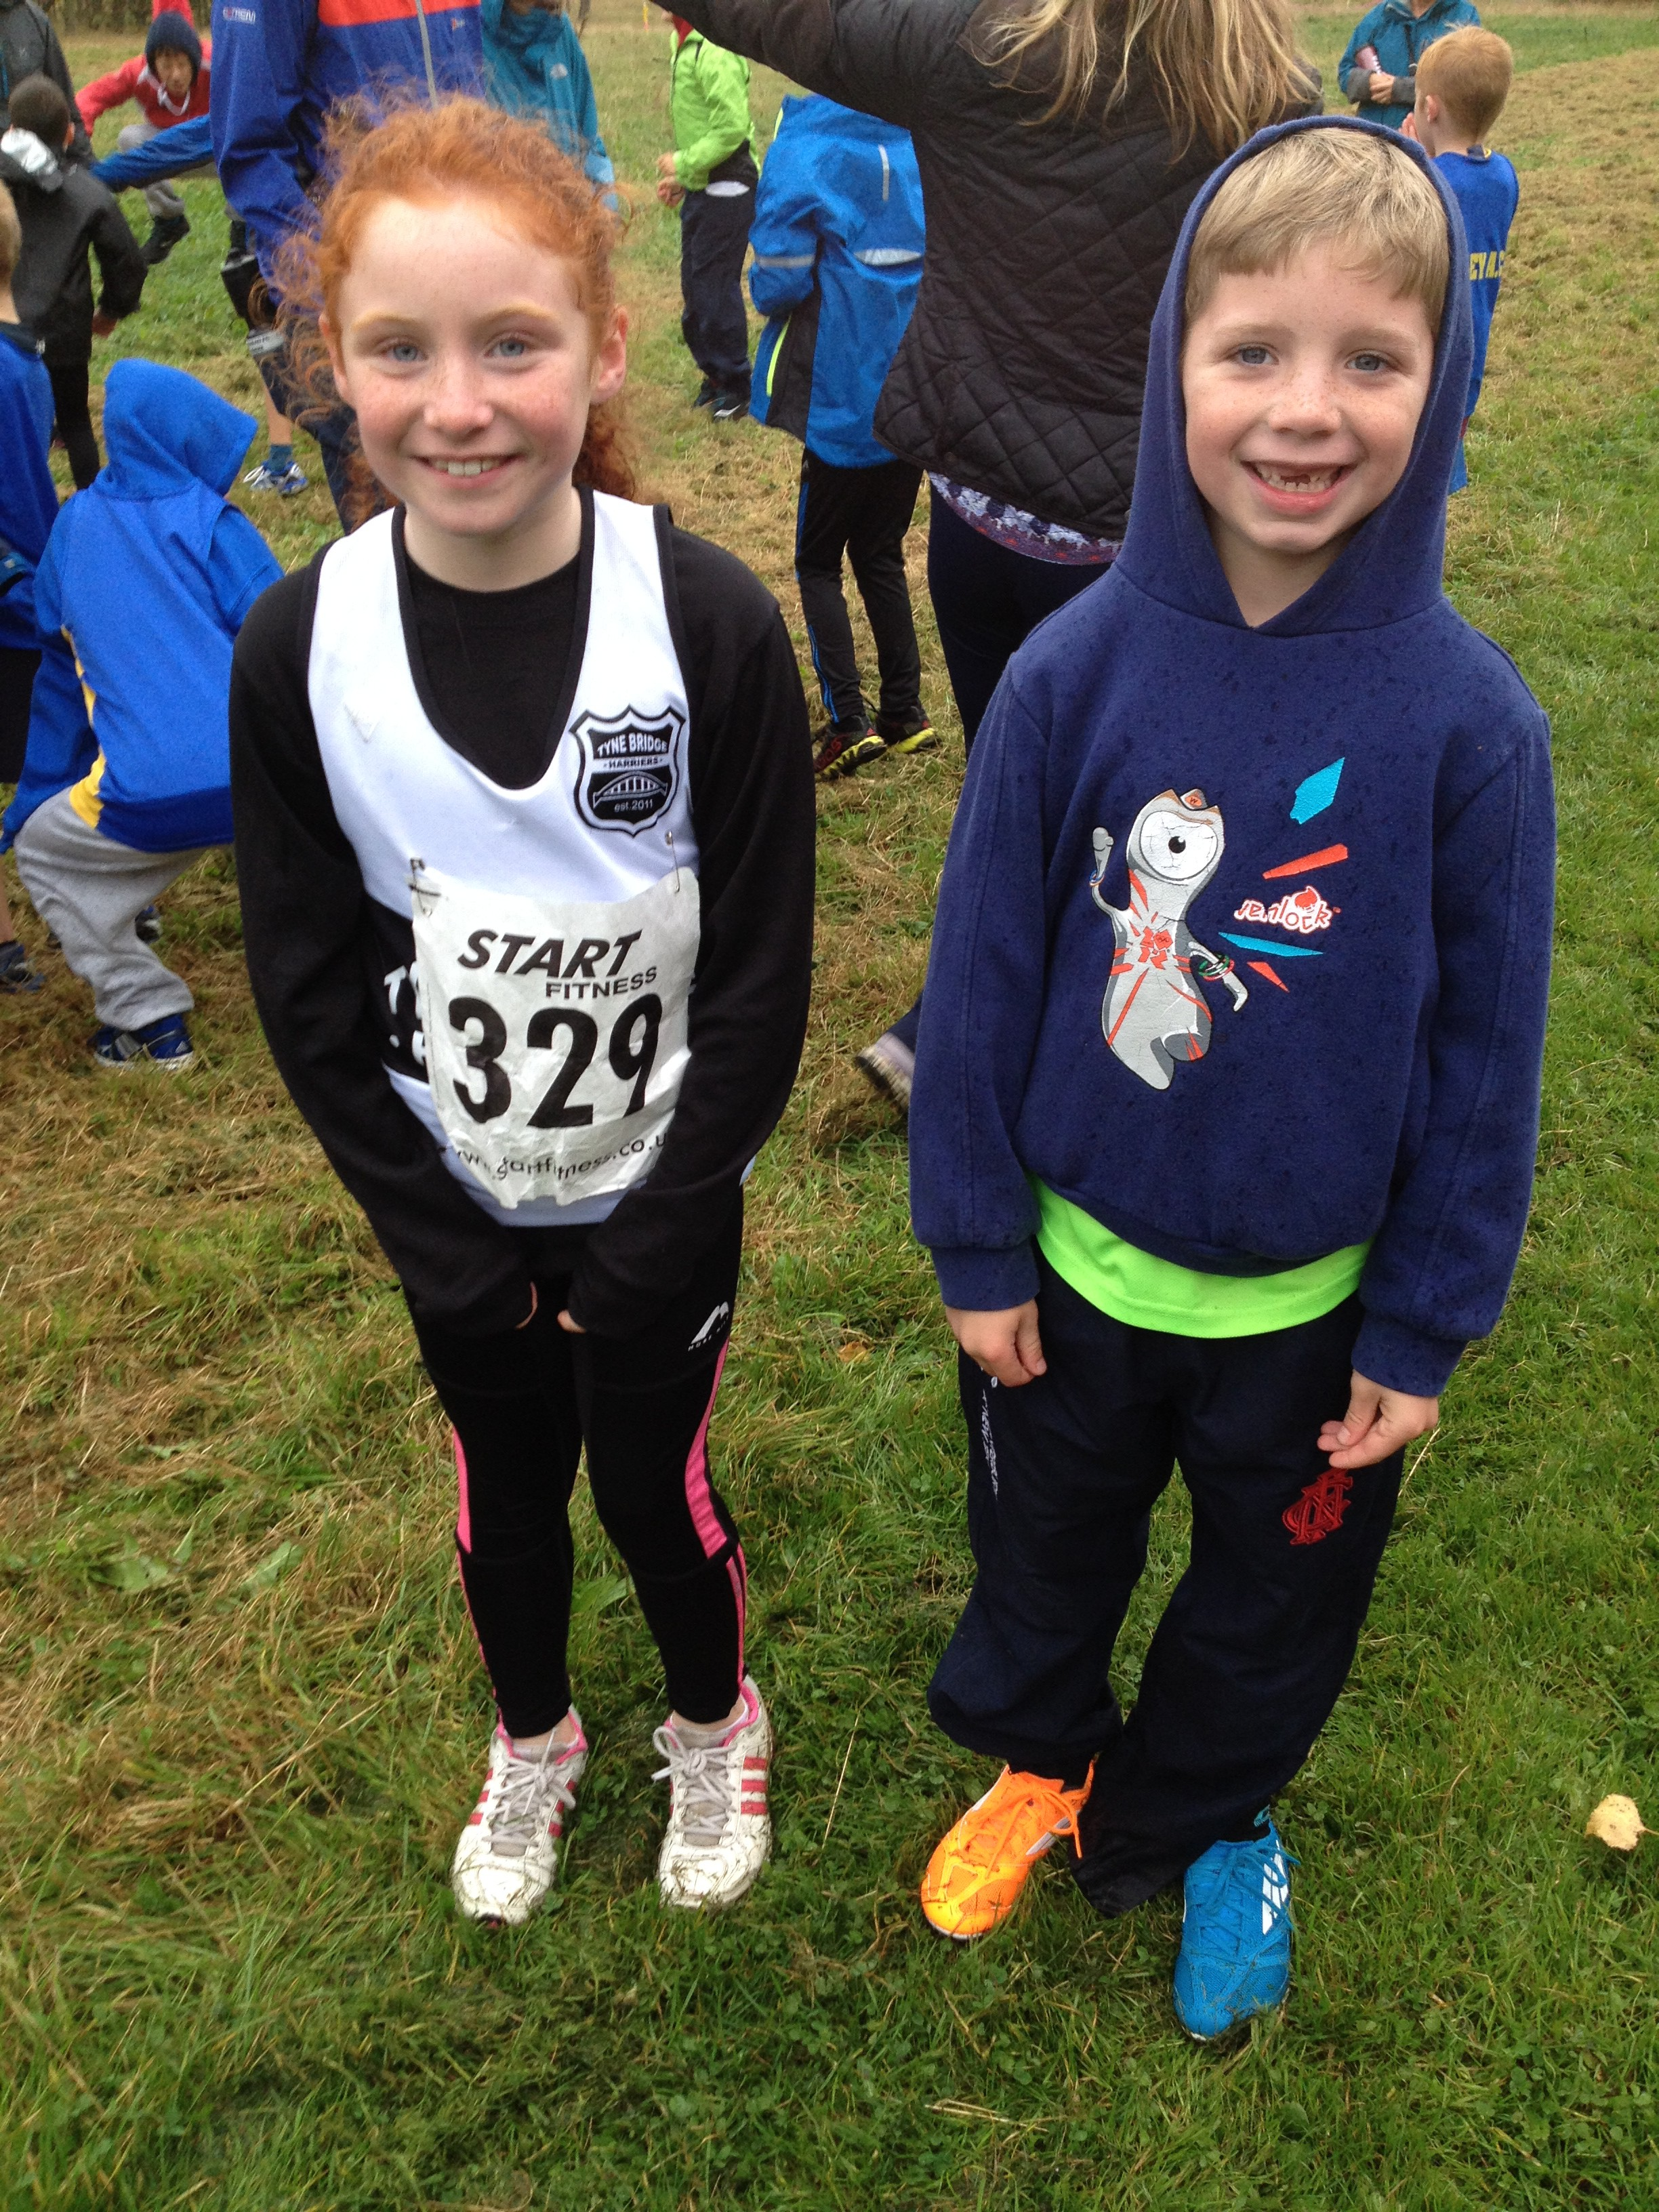 Millie and Jake. (Hopefully Jake will wear matching shoes next time  <img src='http://www.tynebridgeharriers.com/juniors/wp-content/plugins/wp-monalisa/icons/wpml_wink.gif' alt=';-)' width='20' height='20' class='wpml_ico' />  )